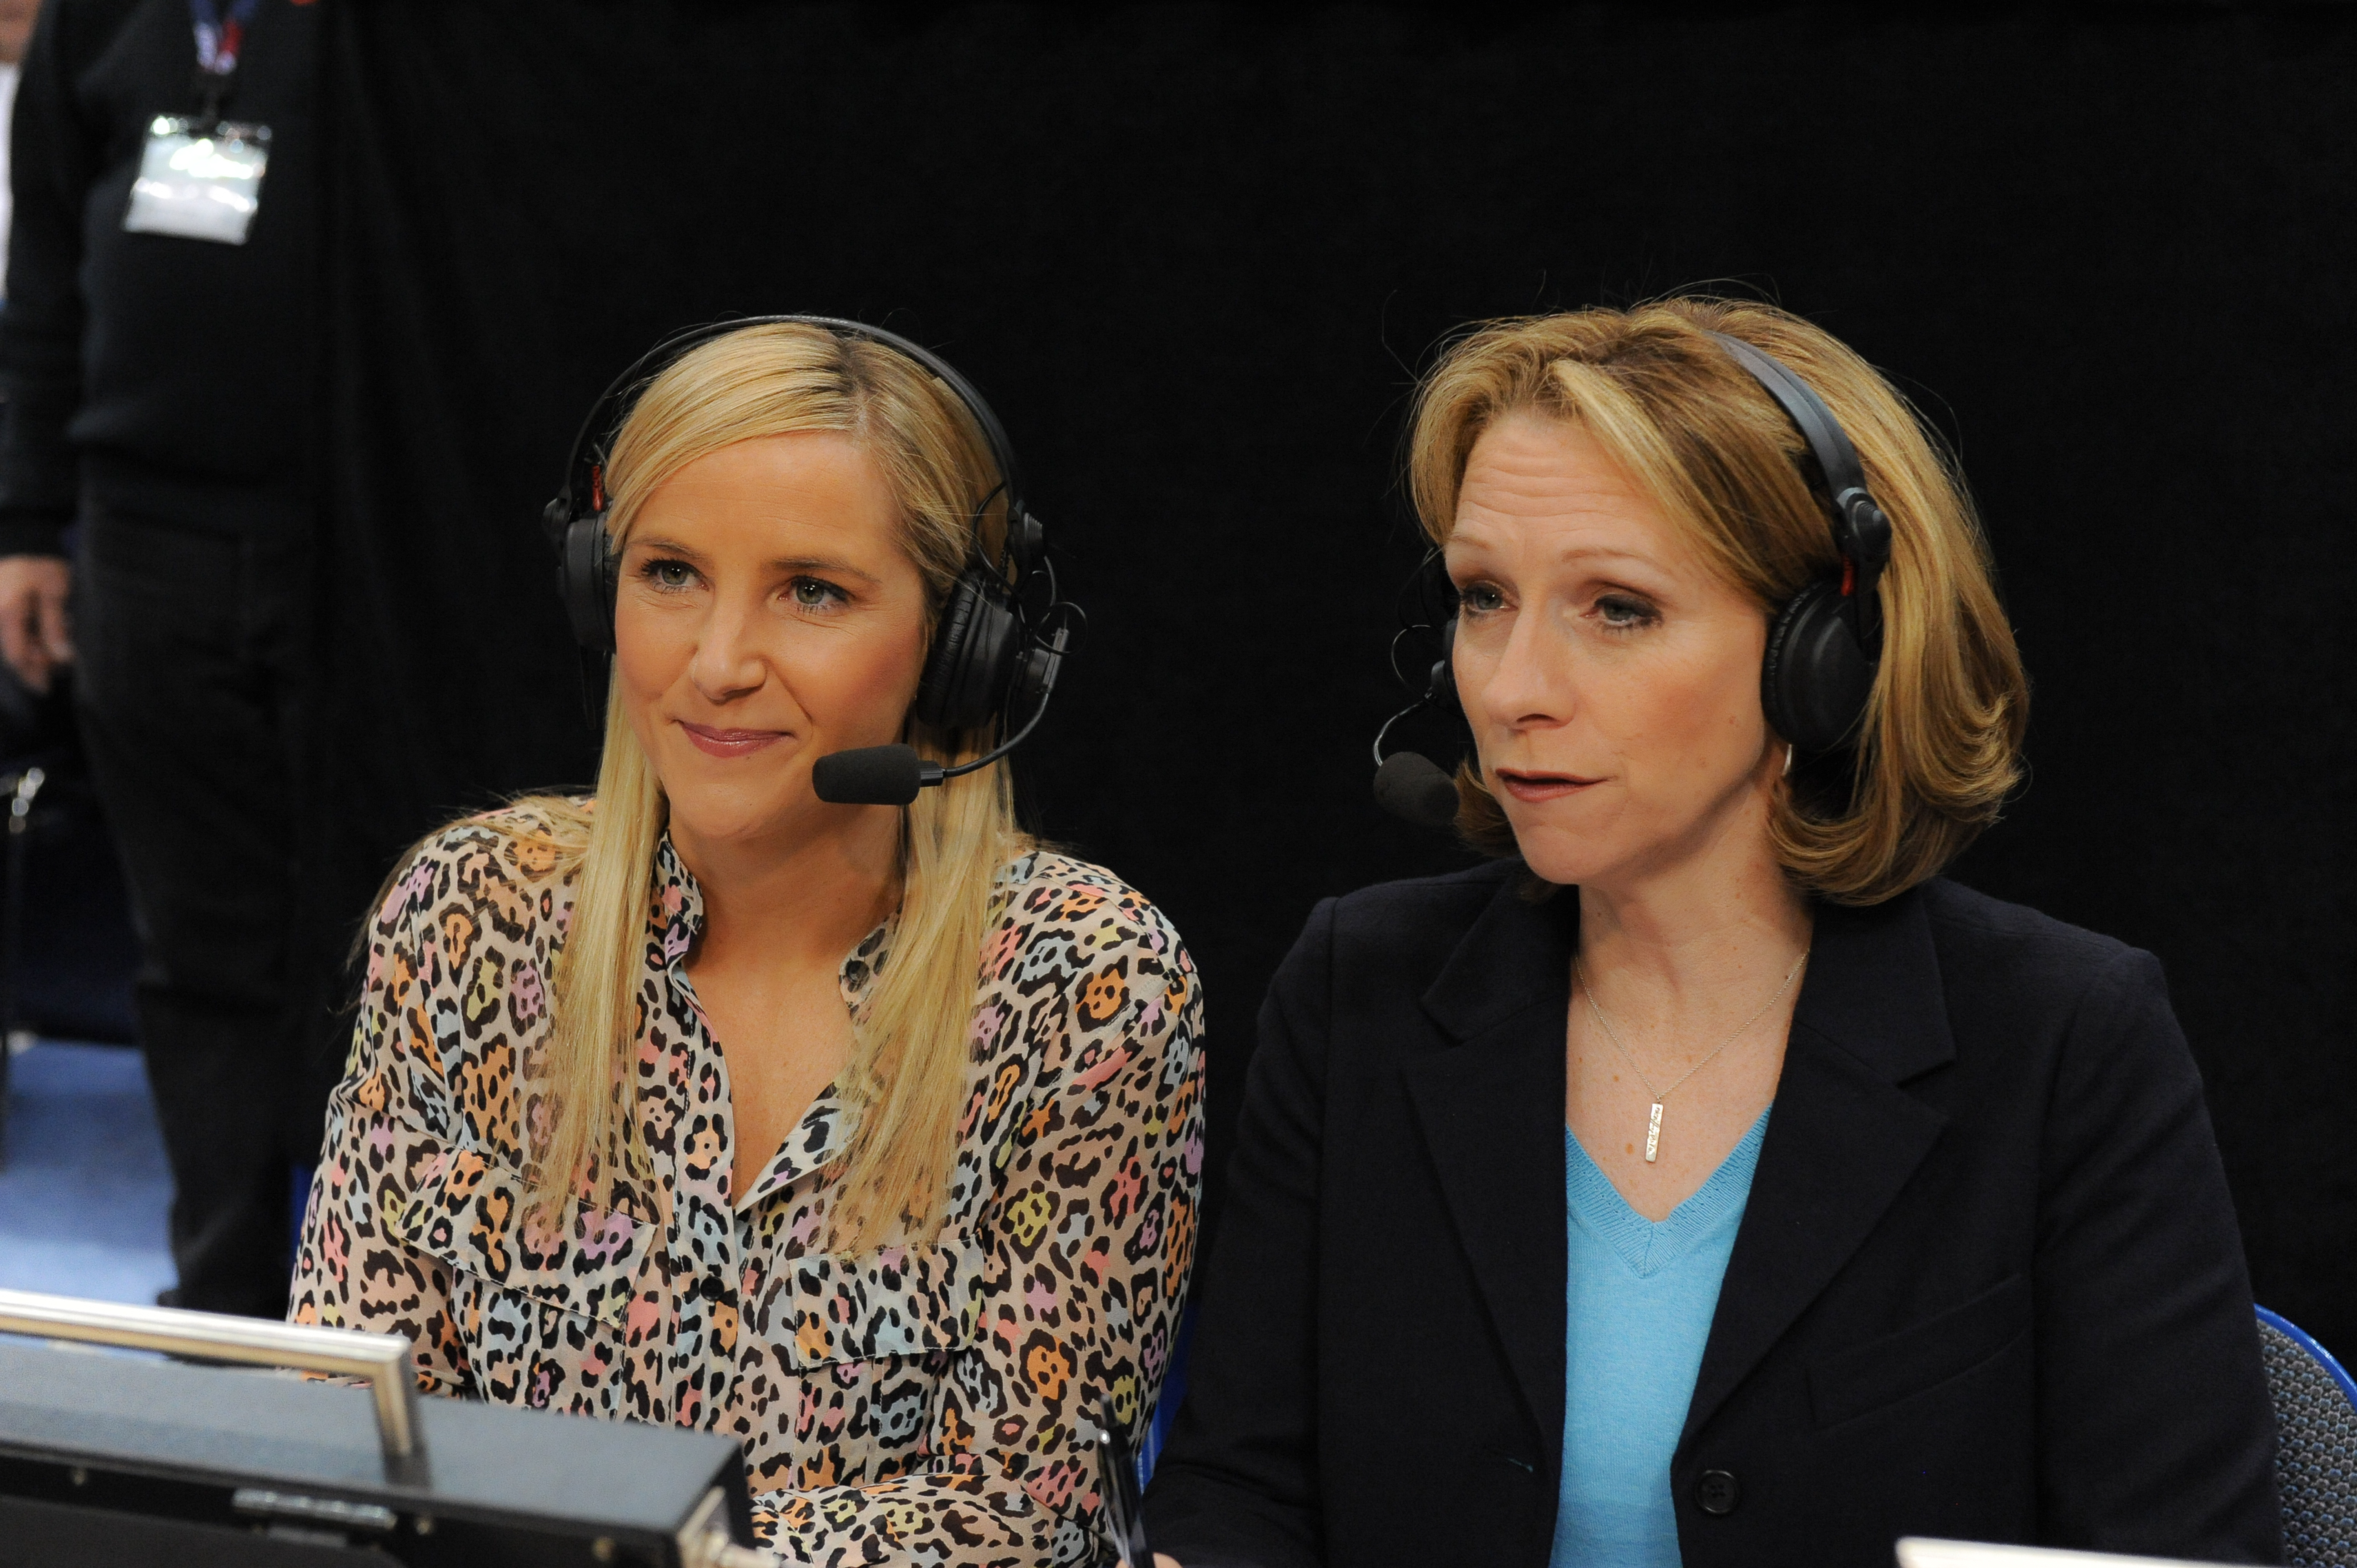 In this March 11, 2013, photo provided by ESPN Images, Brook Weisbrod, left, and Beth Mowins are shown during the women's Big East Championship basketball game in Hartford, Conn. Beth Mowins has spent her accomplished career as a play-by-play announcer tr